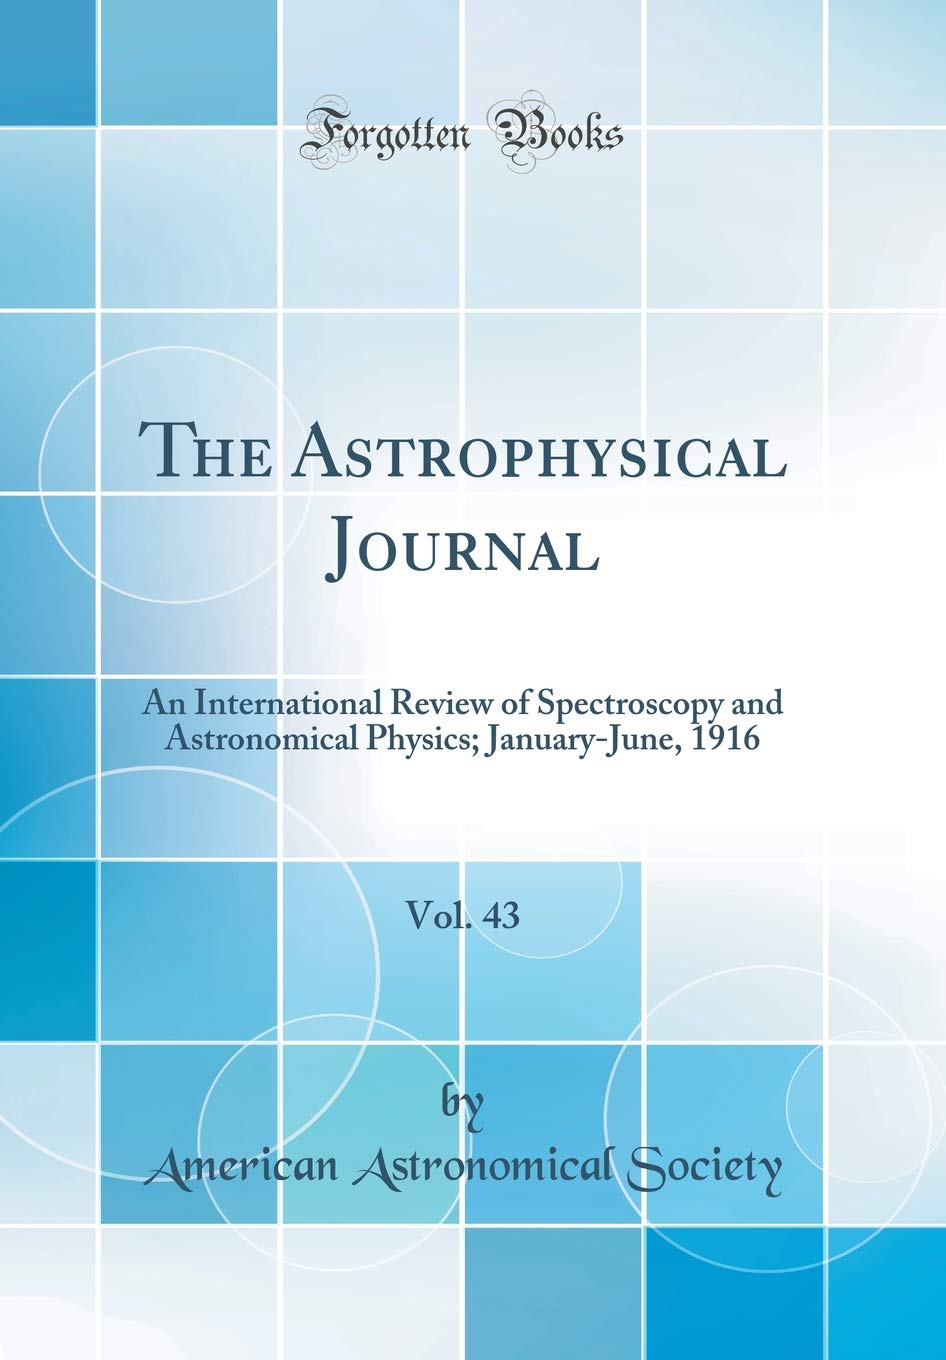 The Astrophysical Journal, Vol. 43: An International Review of Spectroscopy and Astronomical Physics; January-June, 1916 (Classic Reprint) ebook